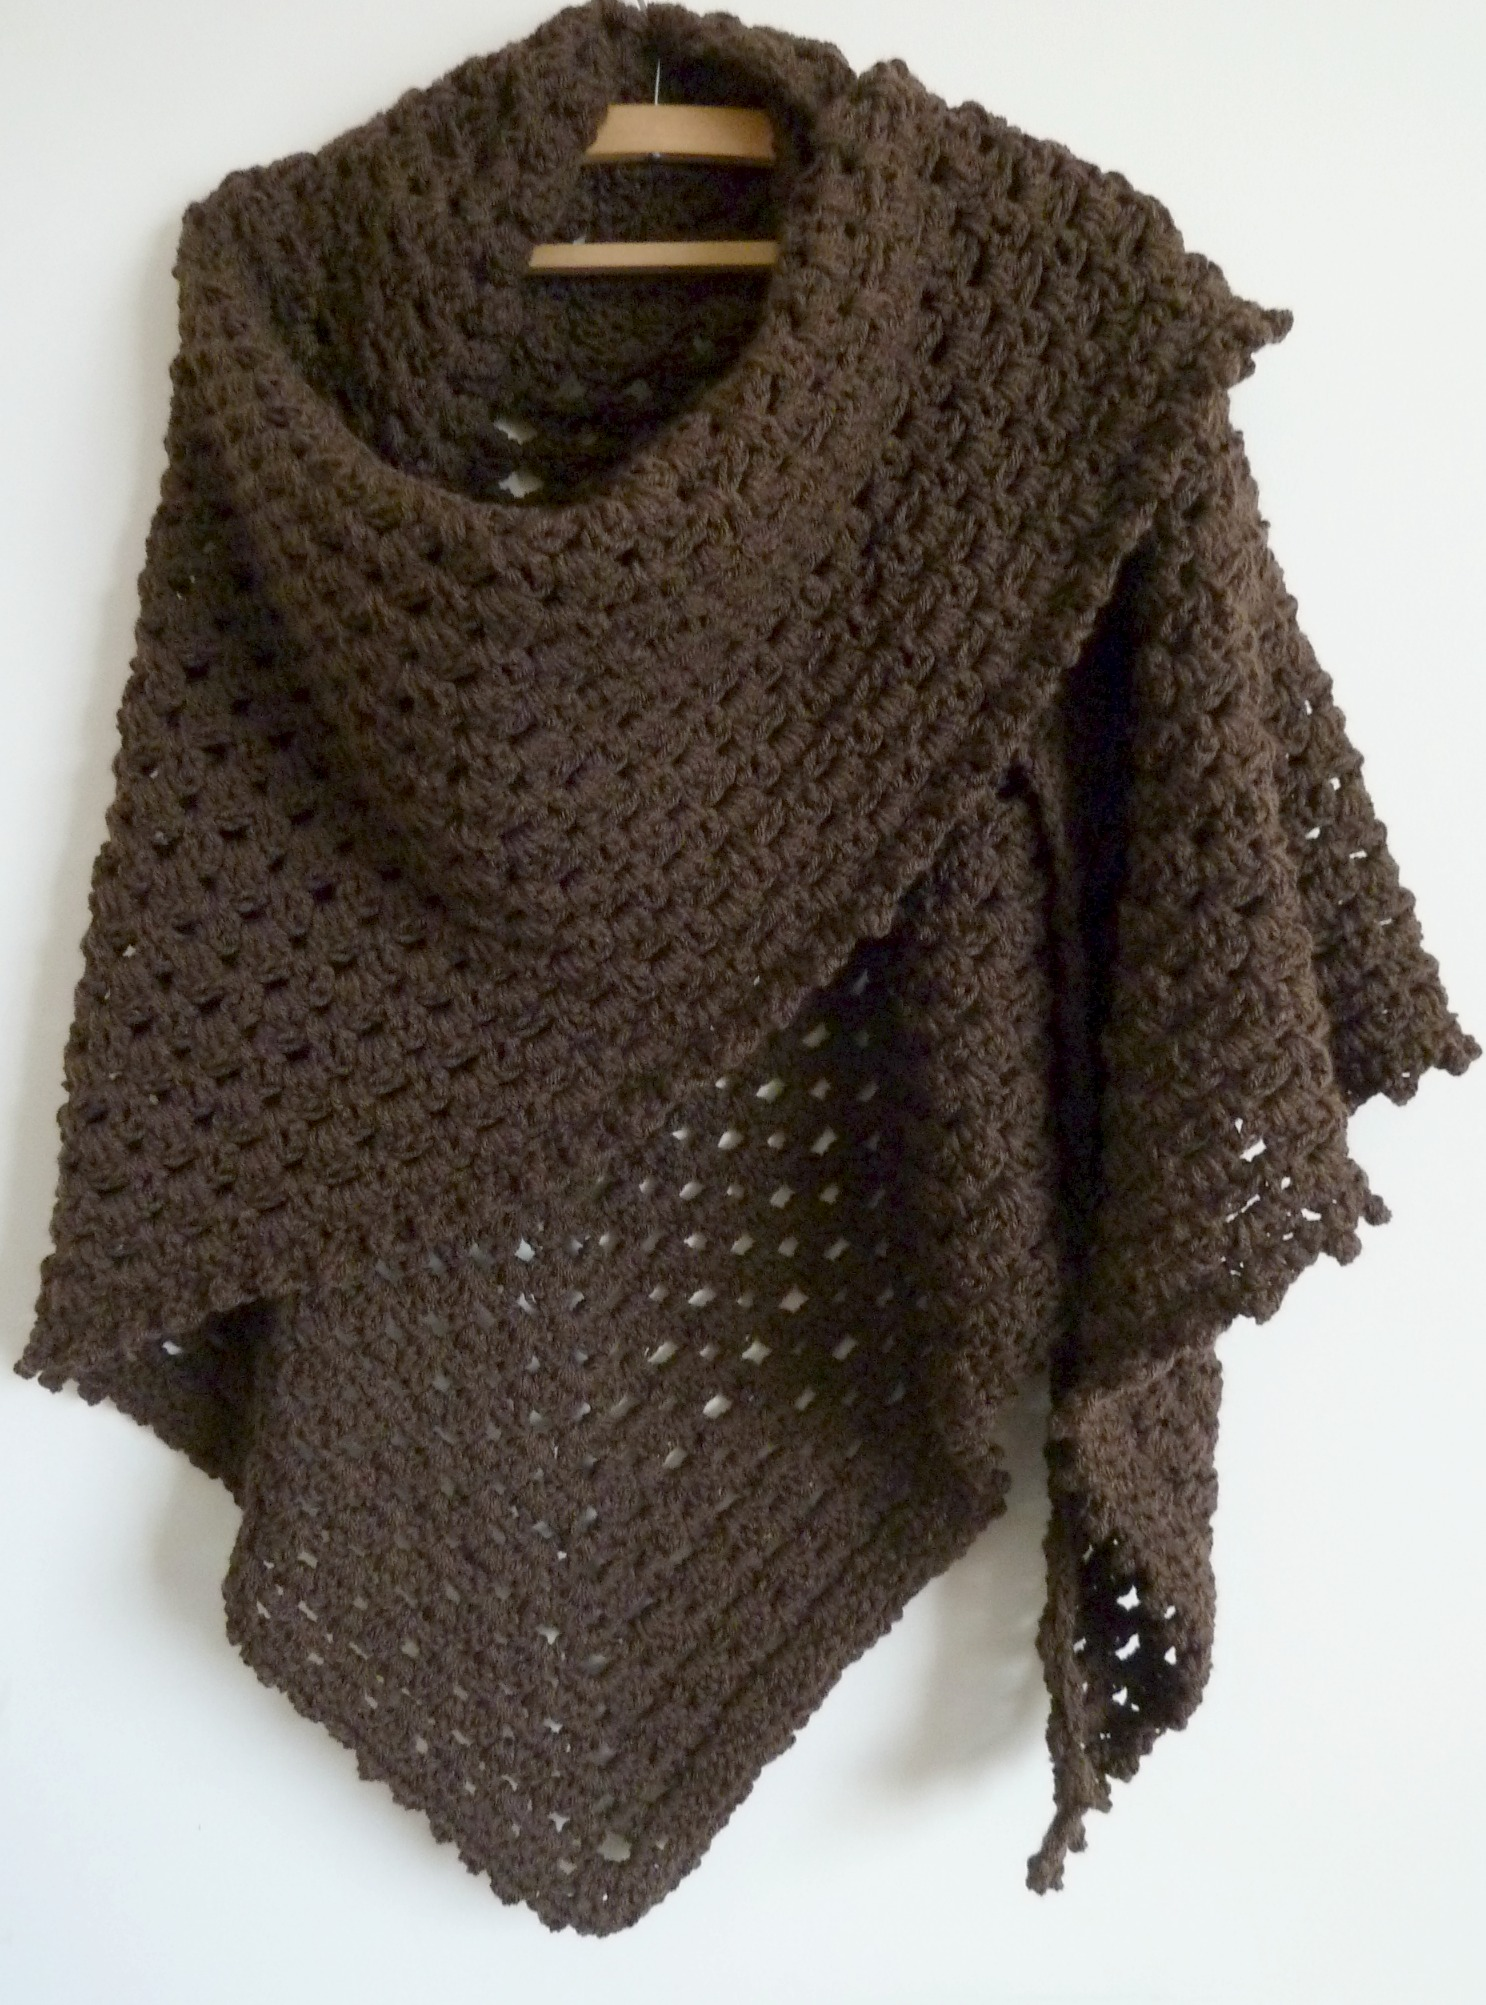 shawls, ponchos, wraps knit and crochet patterns